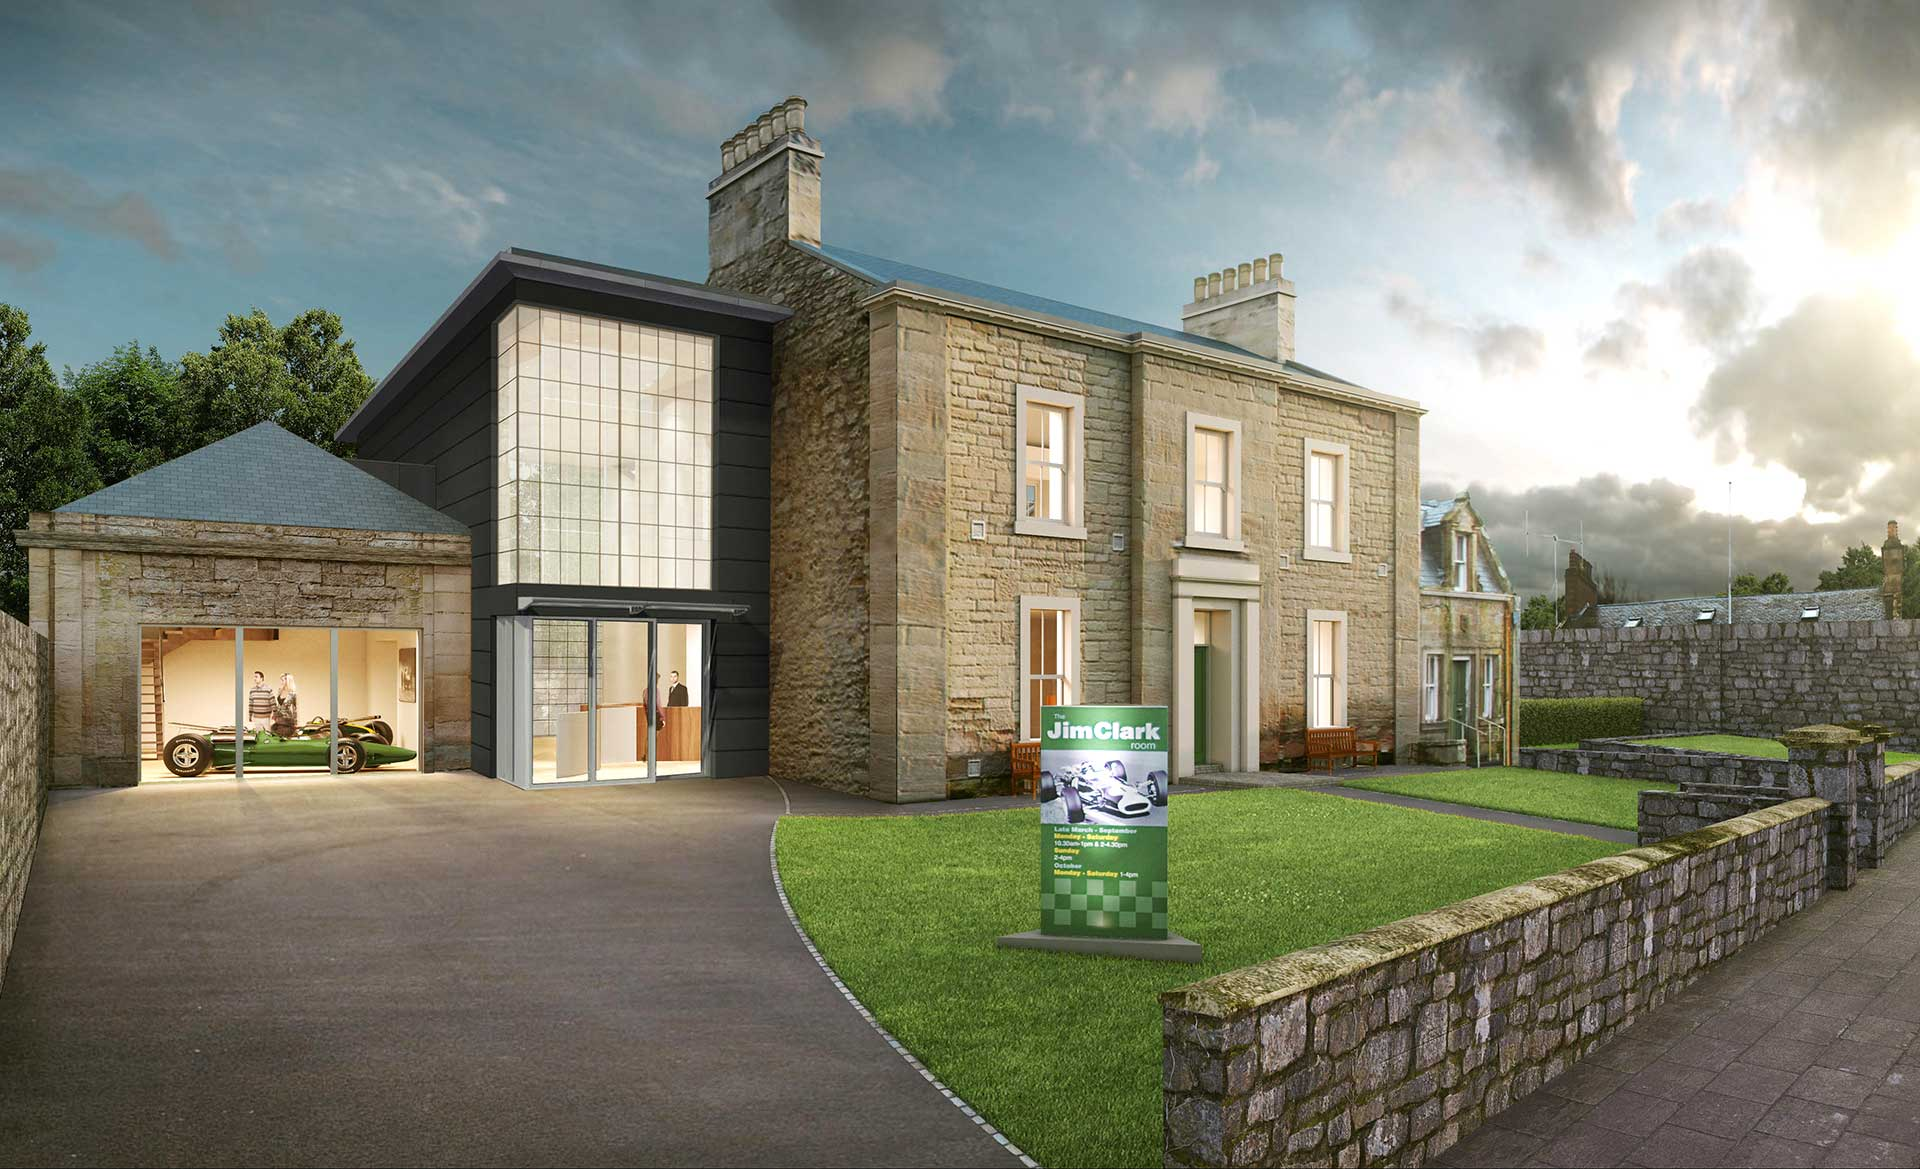 Work on the expanded Jim Clark Museum to start in May